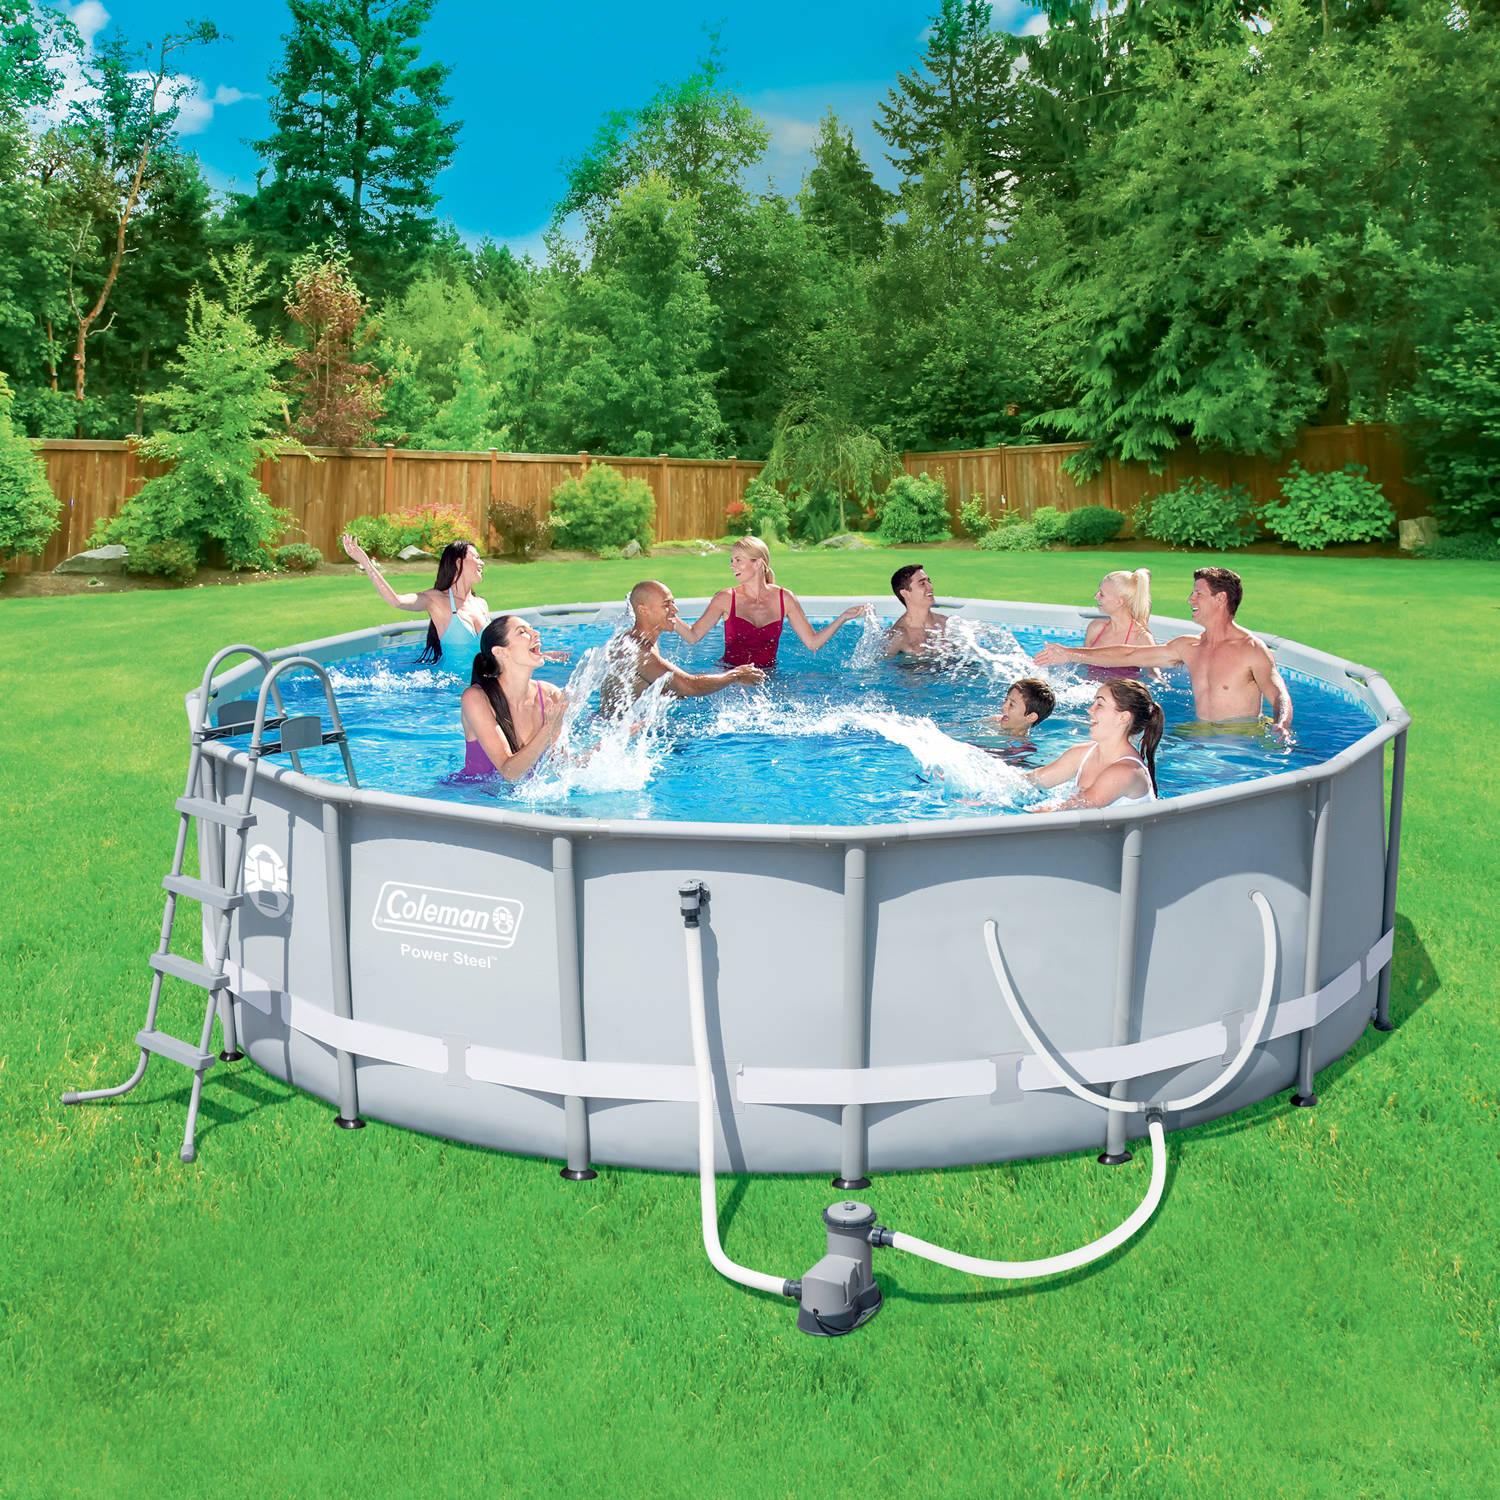 "Coleman Power Steel 16' x 48"" Frame Swimming Pool Set with Filter Pump, Ladder, Cover and Maintenance Kit"